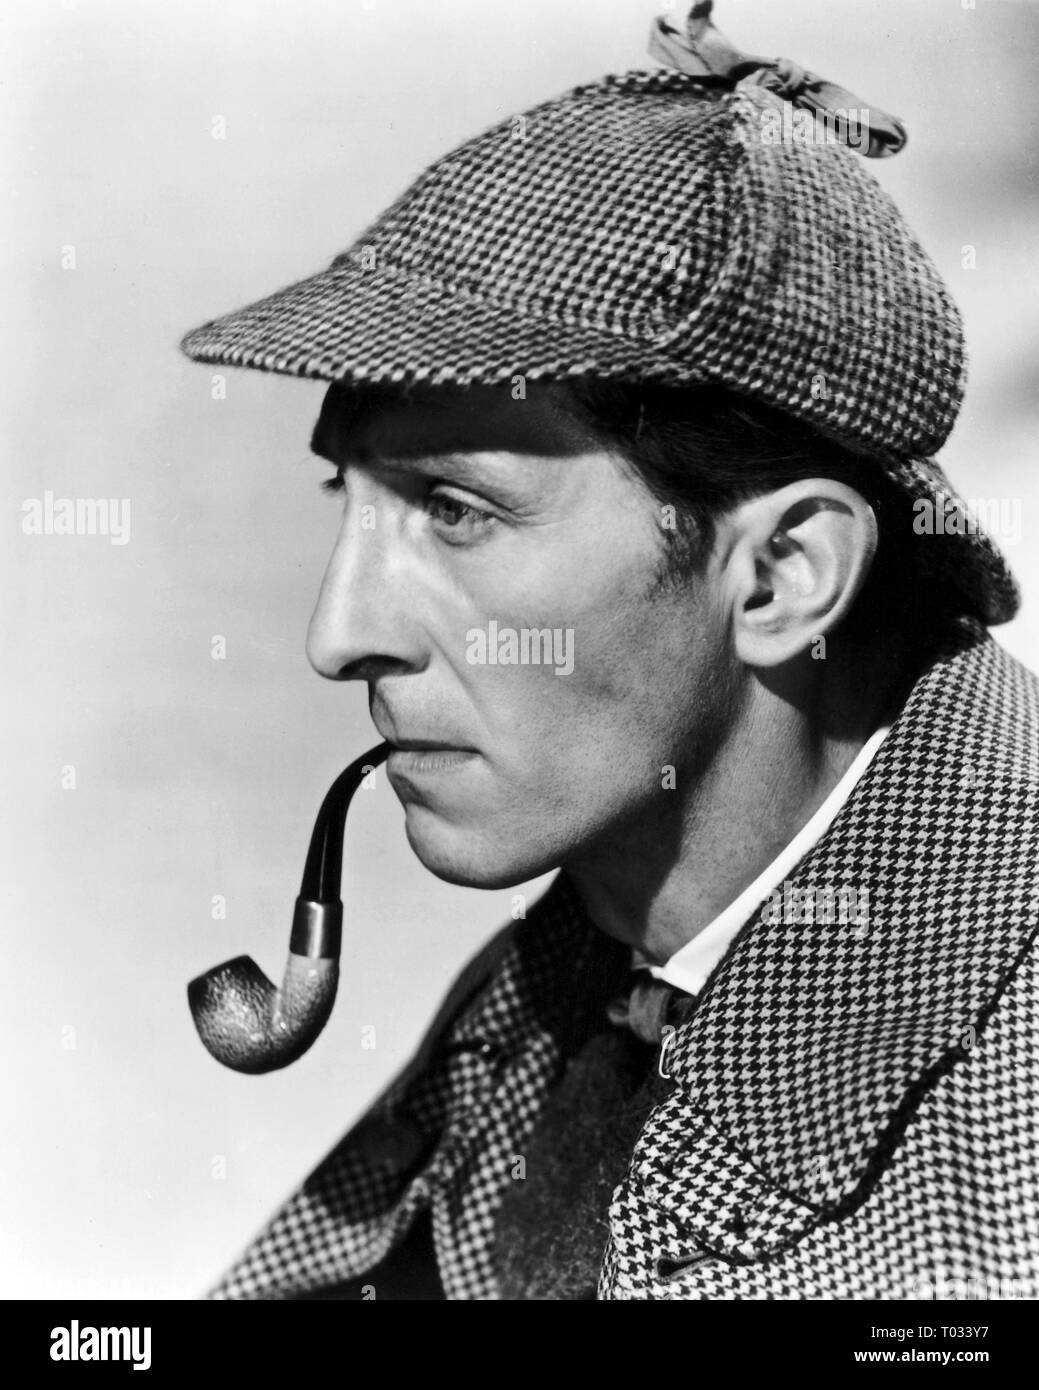 THE HOUND OF THE BASKERVILLES, PETER CUSHING, 1959 - Stock Image